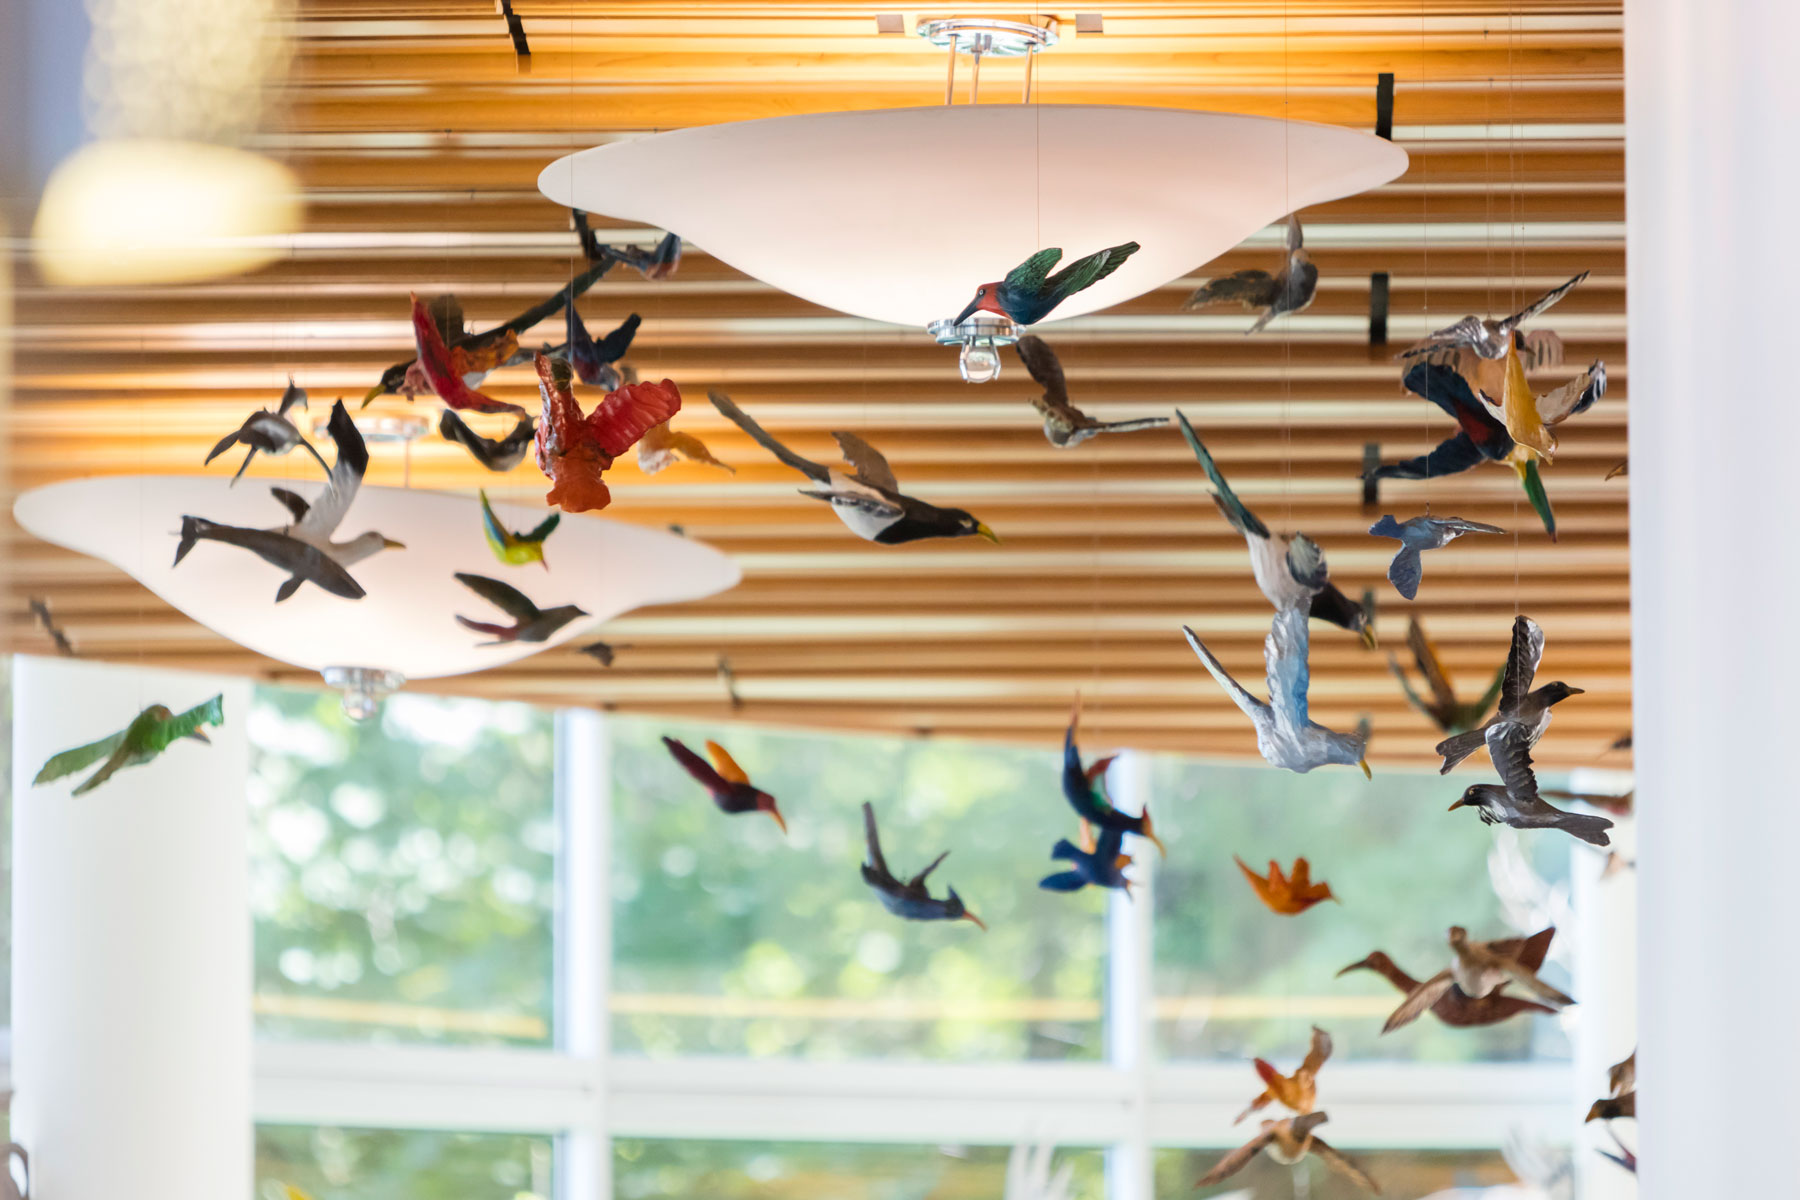 Colorful ceramic birds hanging from the ceiling in the Doernbecher hospital lobby